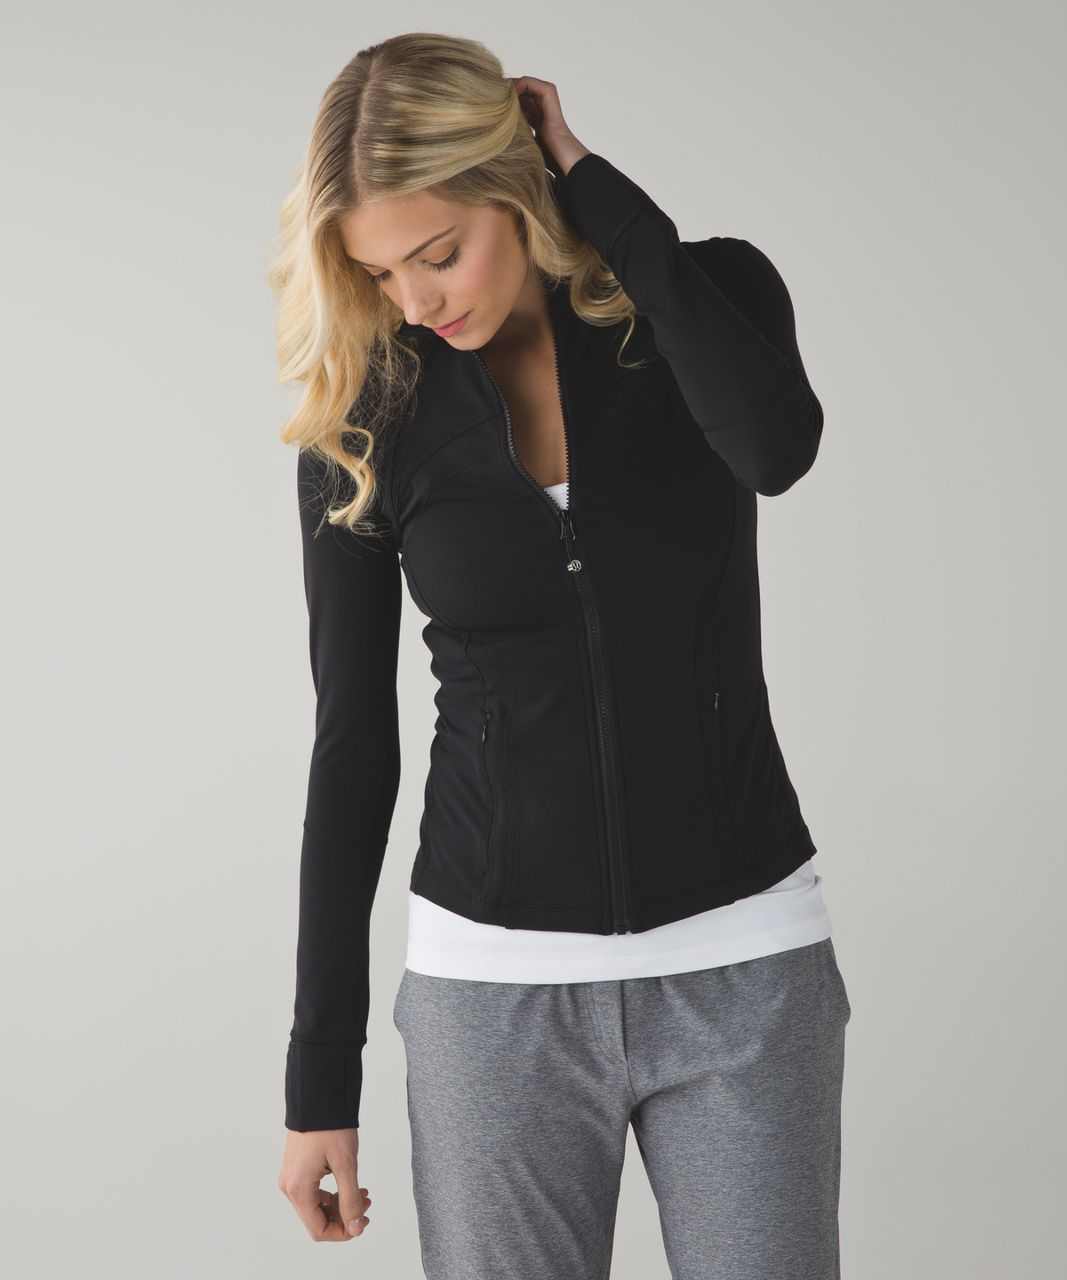 Lululemon Define Jacket *Shine On - Black